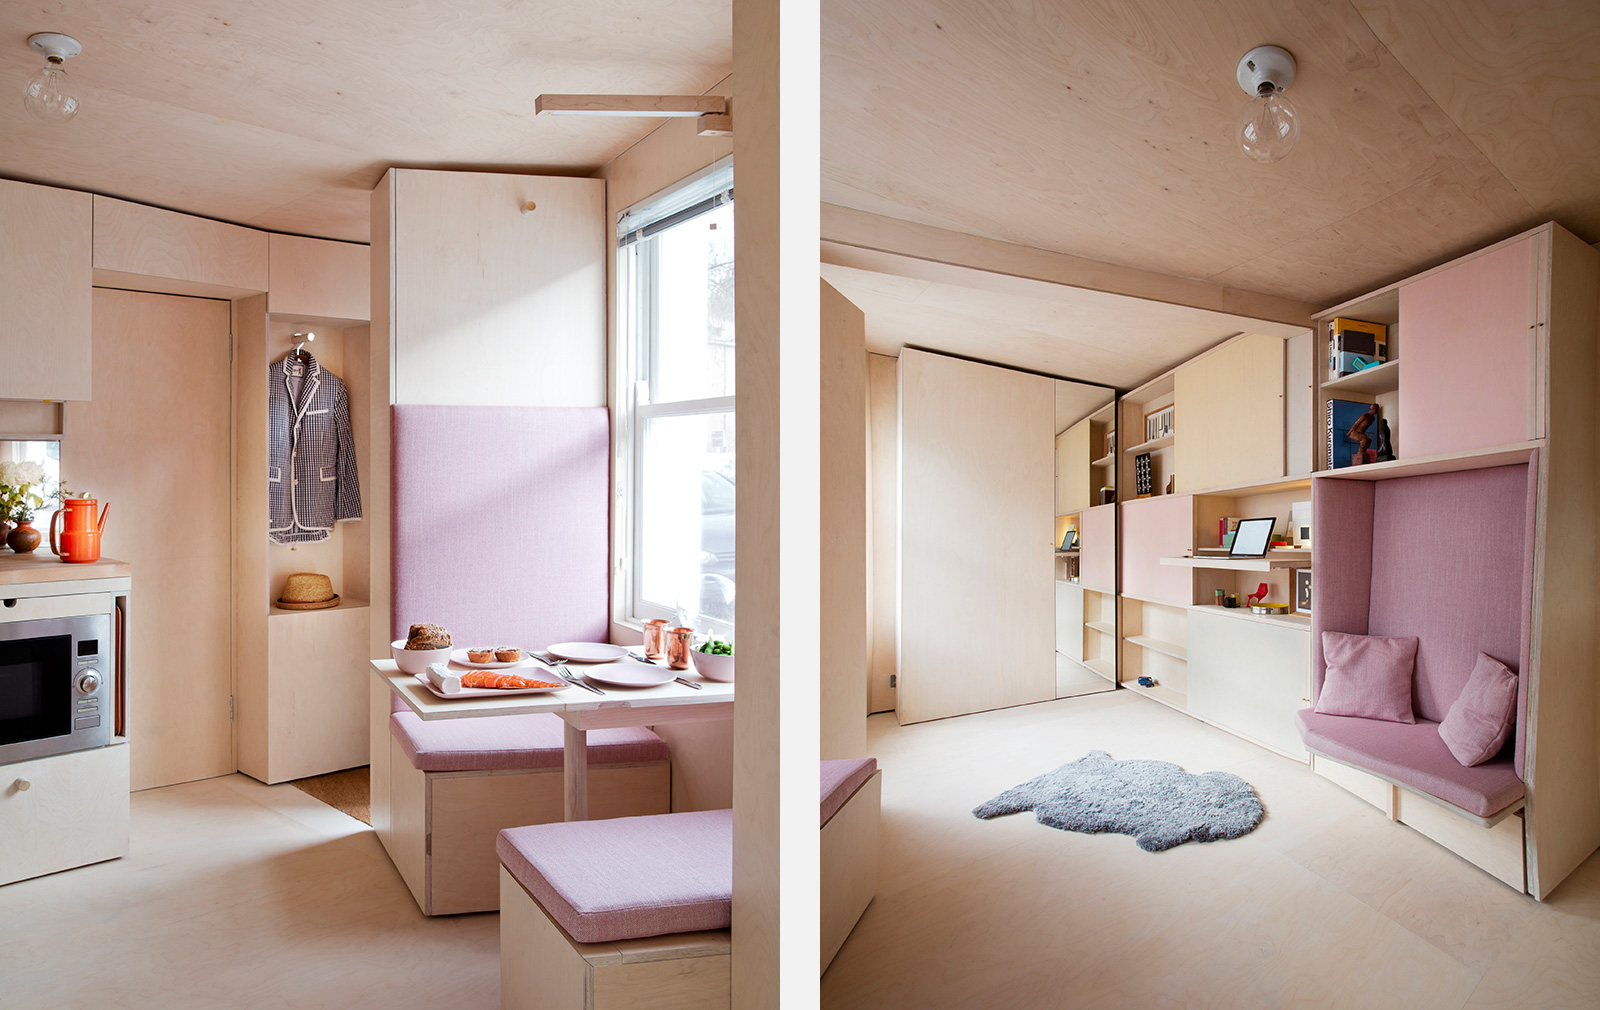 Micro Studio Apartments 7 Ingenious Small Space Ideas And The Designers Behind Them